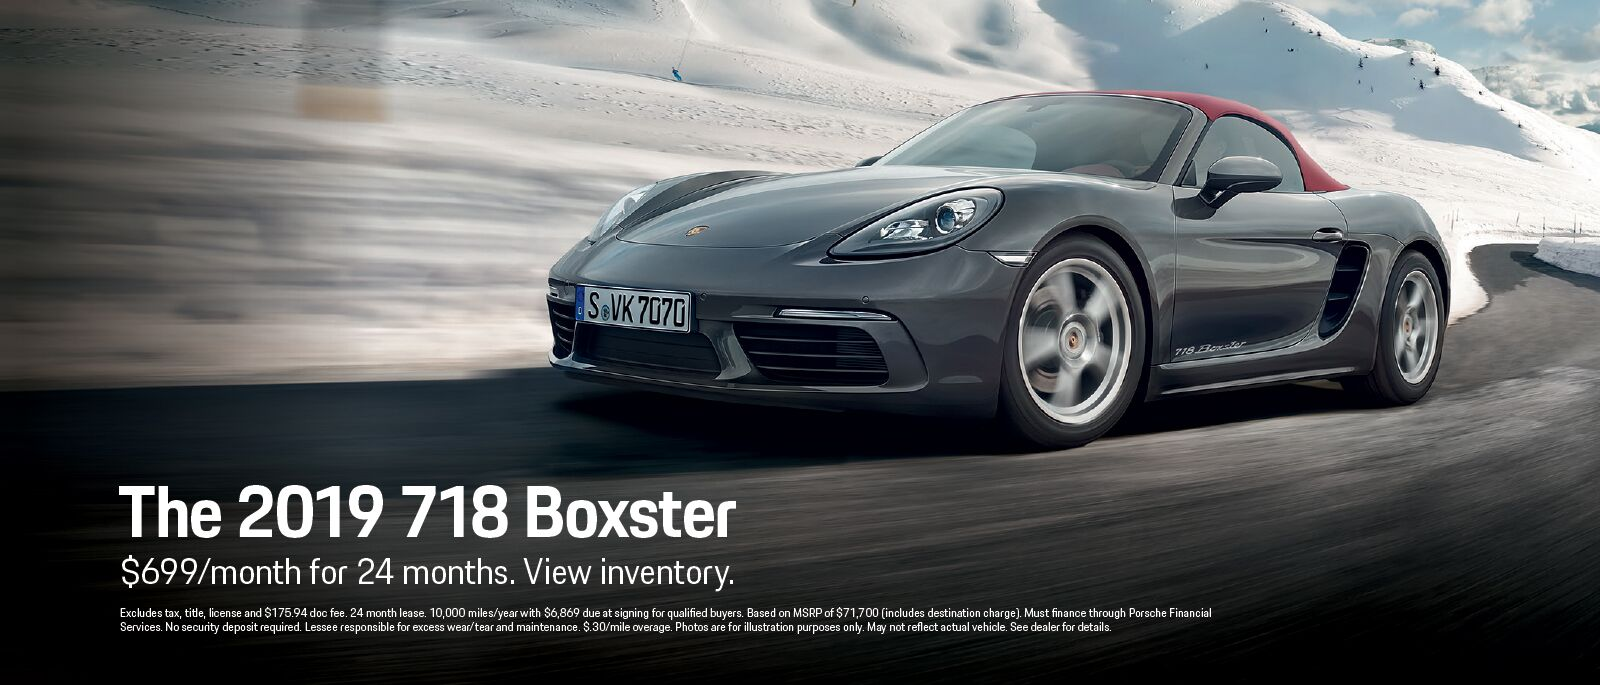 The 2019 718 Boxster